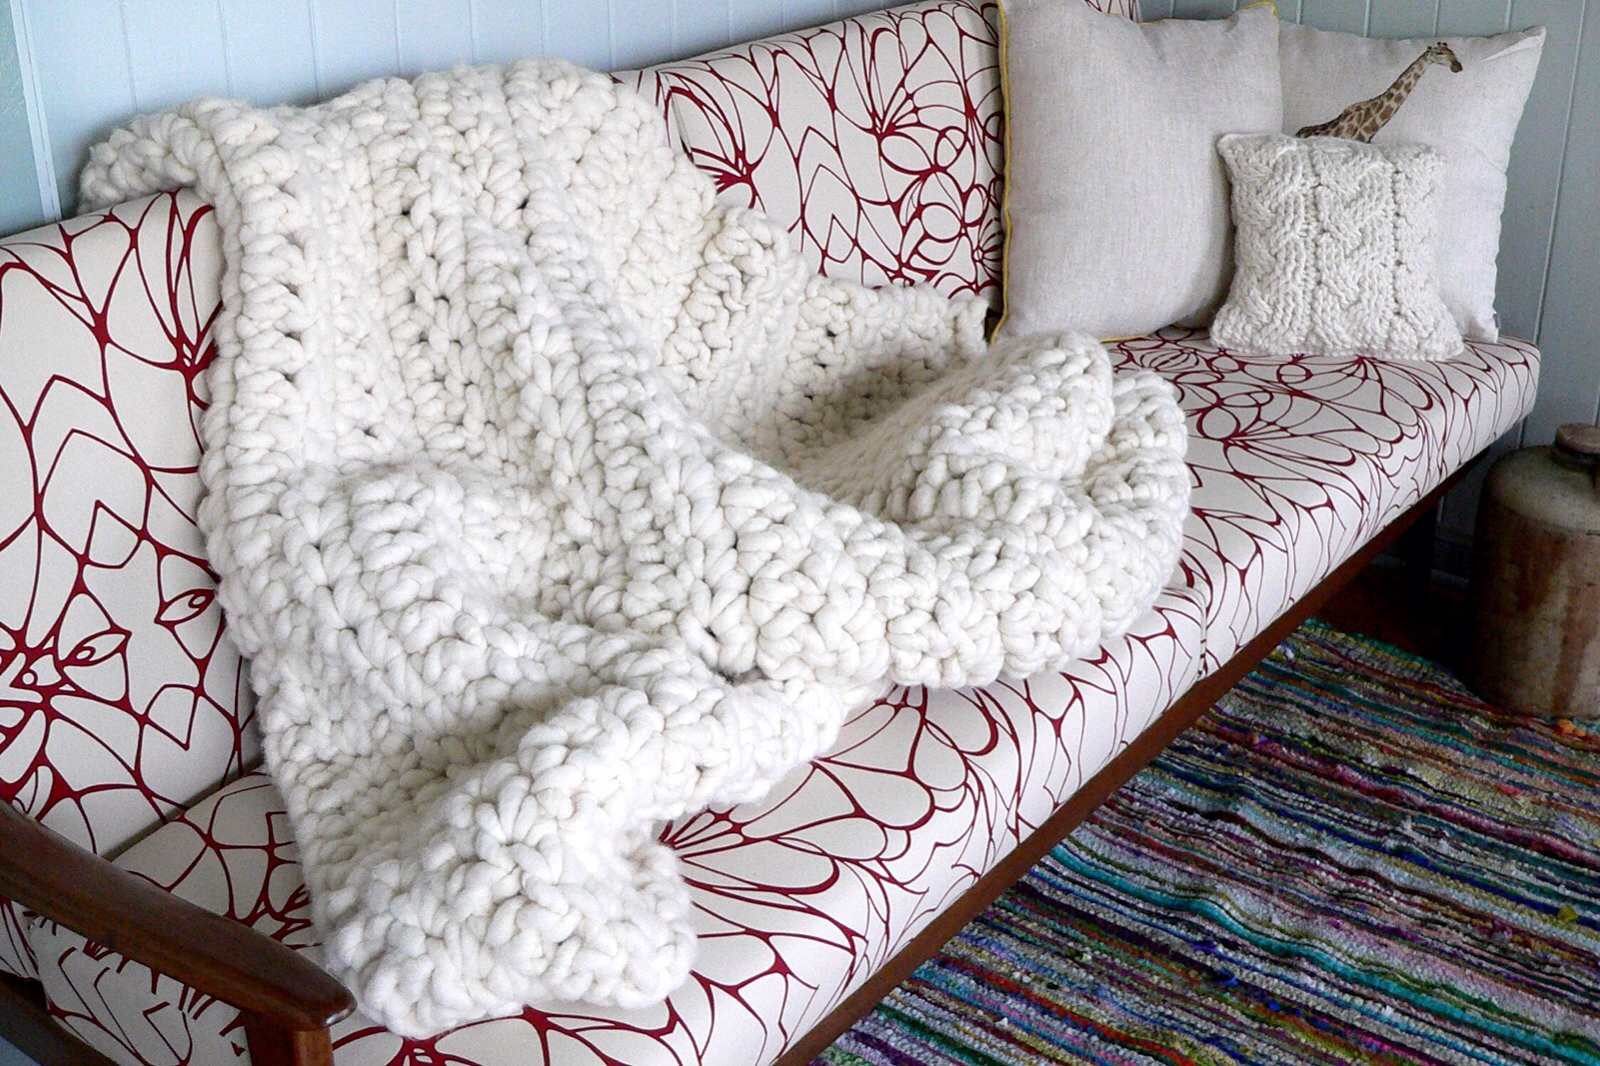 Bulky Yarn Crochet Patterns Beautiful Crochet Stitches for Super Bulky Yarn Wmperm for Of Charming 49 Images Bulky Yarn Crochet Patterns